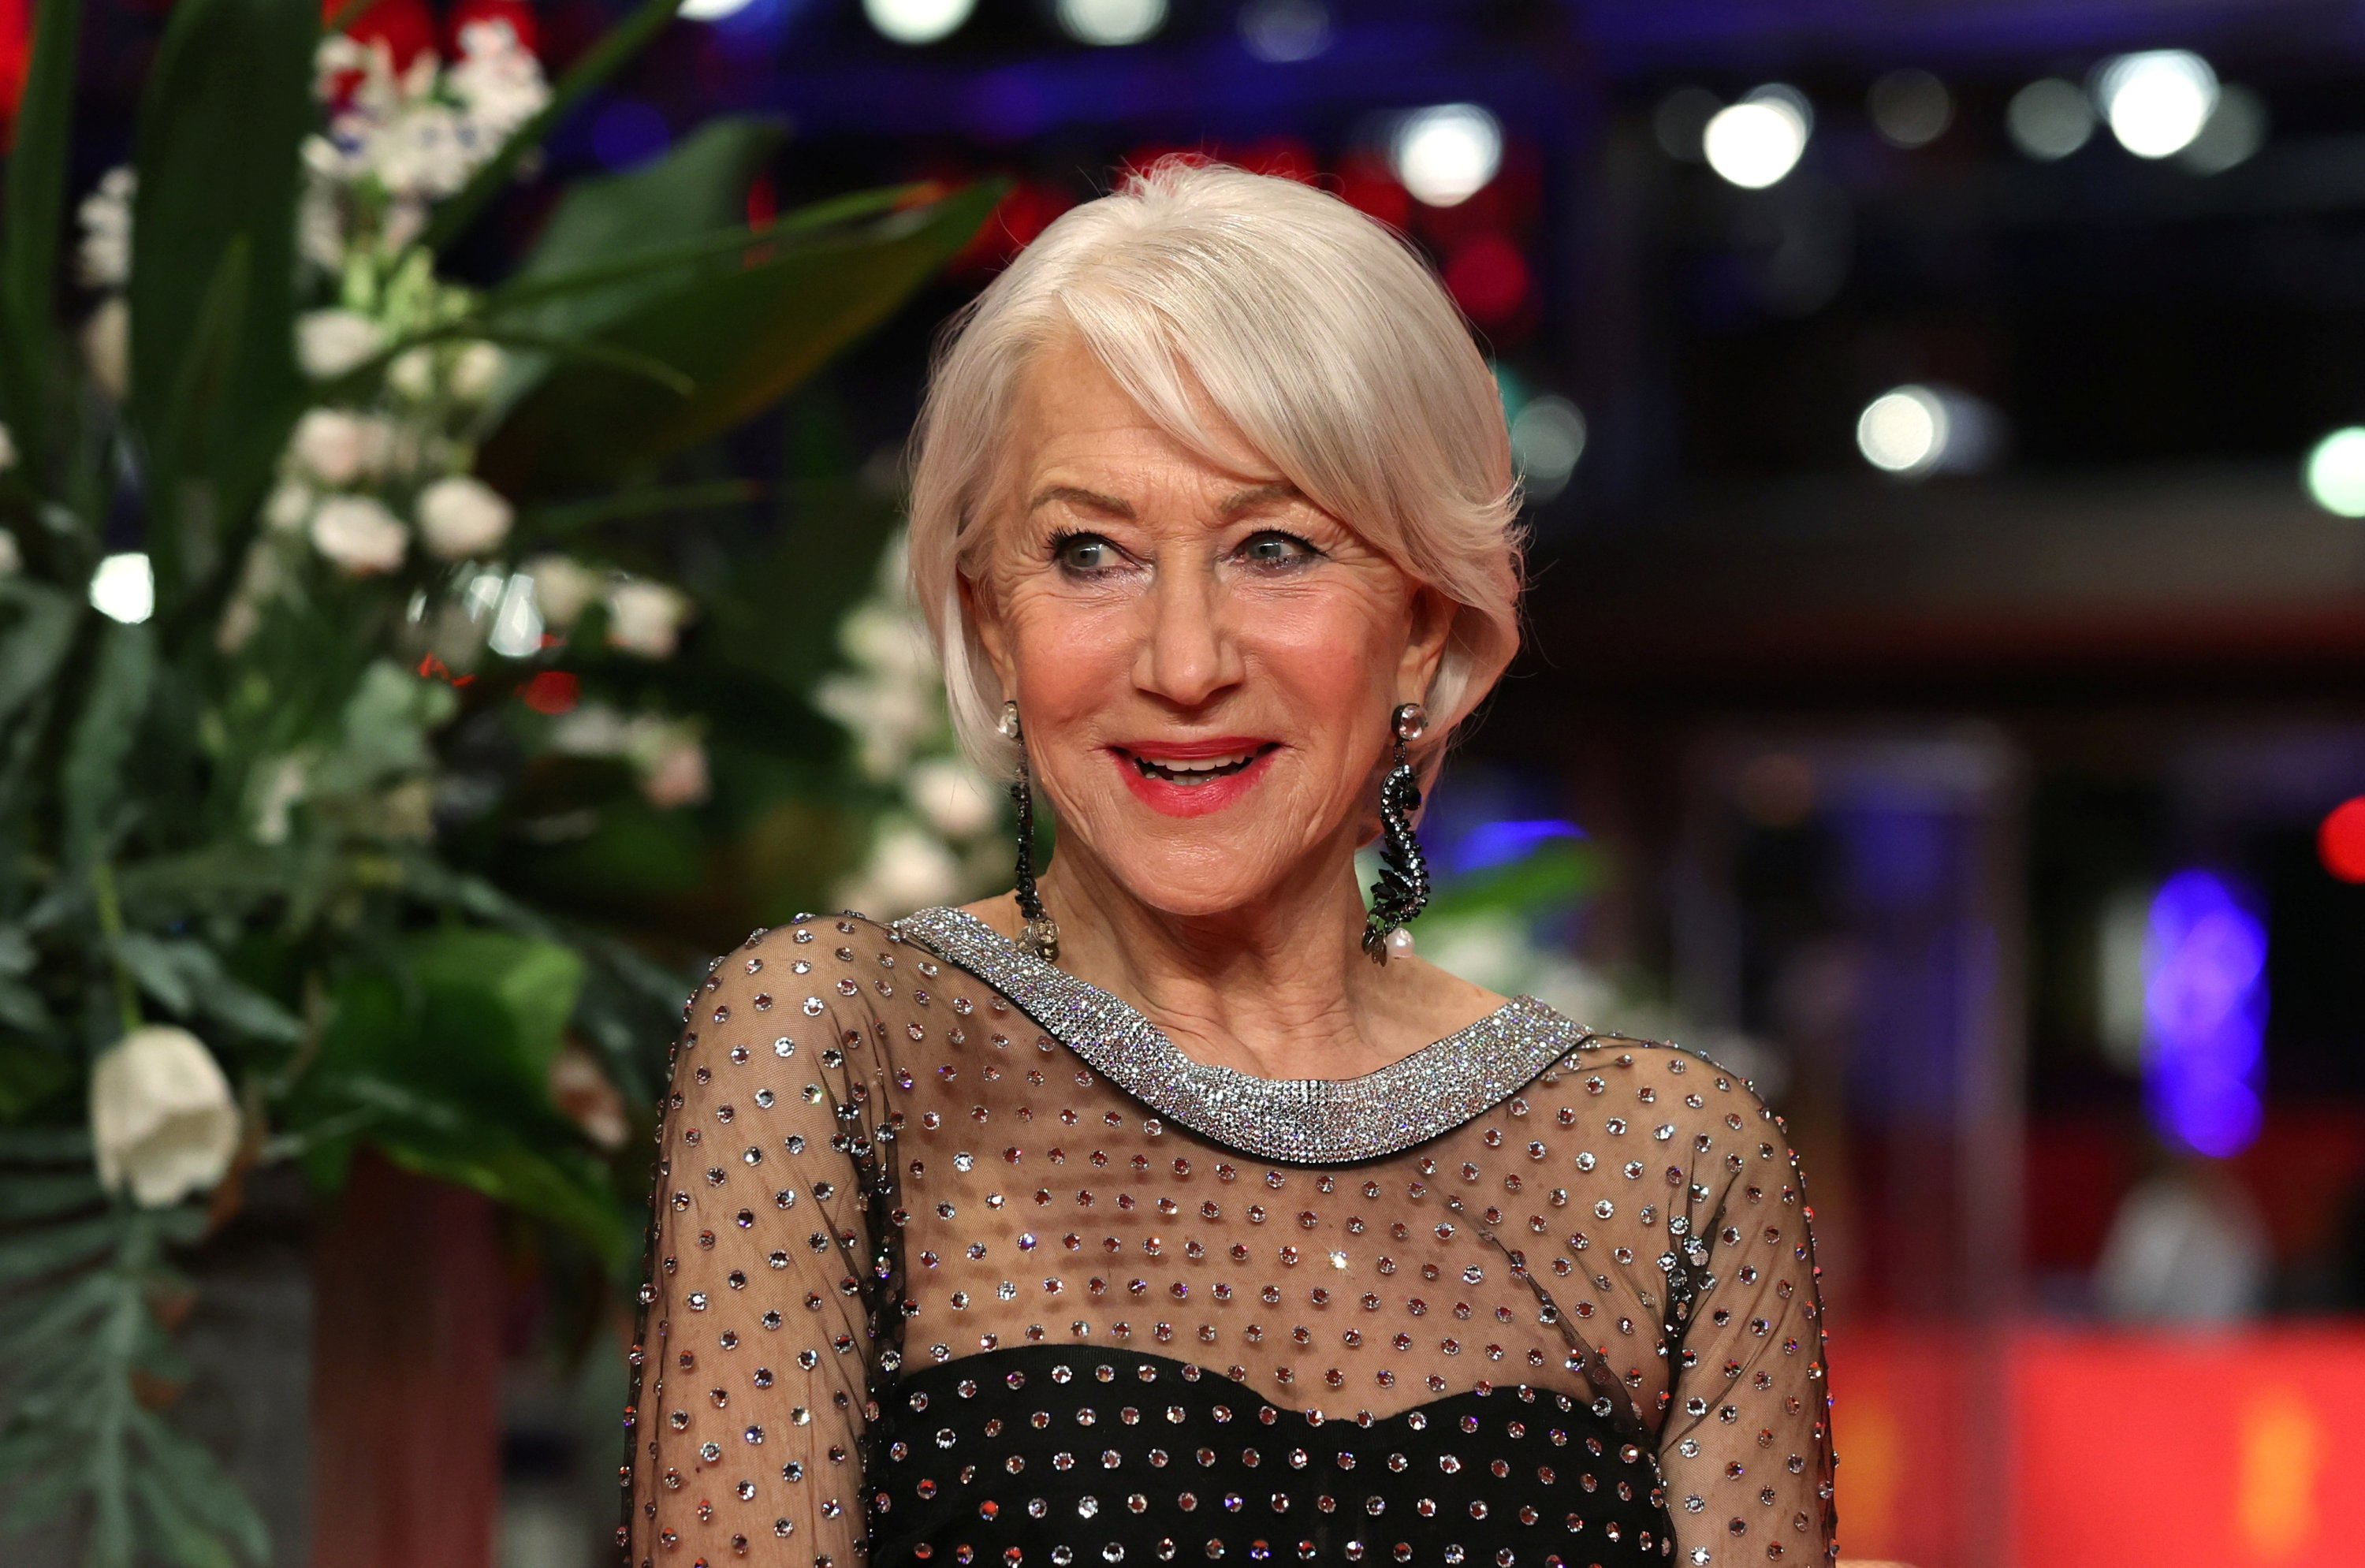 Actor Helen Mirren poses at the red carpet before receiving the Honorary Golden Bear during the 70th Berlinale International Film Festival in Berlin, Germany, Feb. 27, 2020. (Reuters Photo)